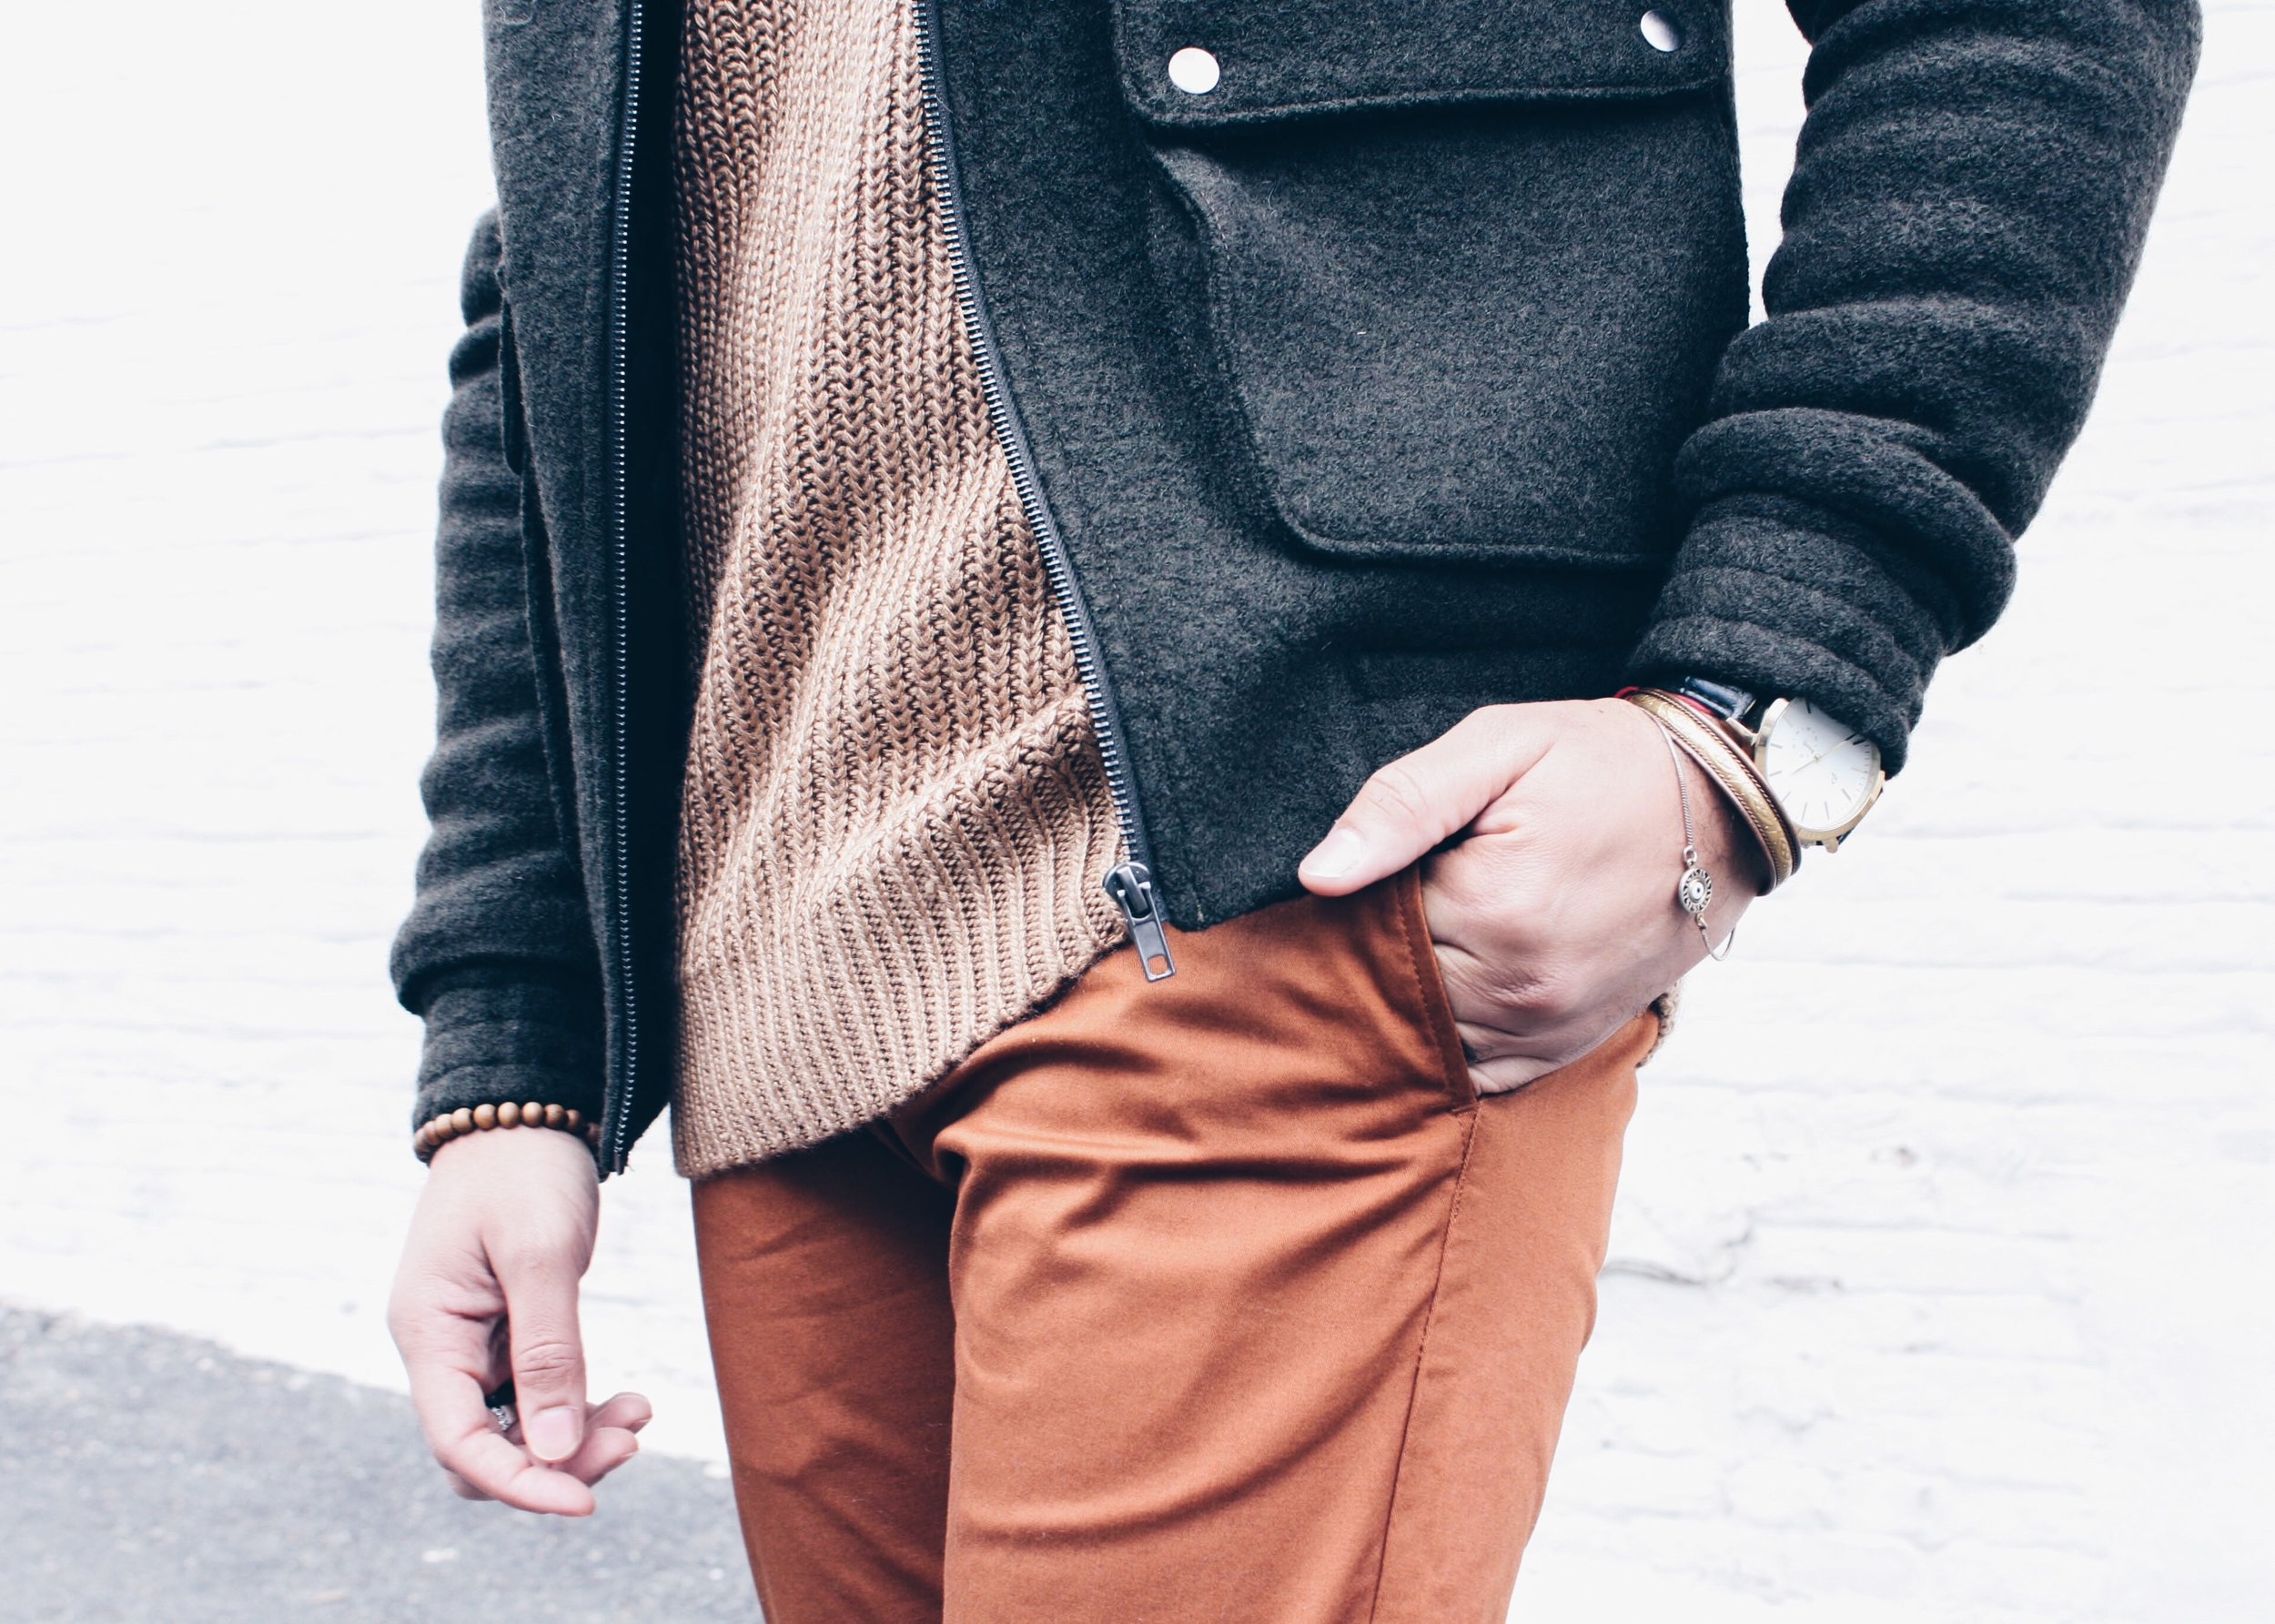 sam-c-perry-chunky-ribbed-knit-sweater-slim-chinos-details.jpg